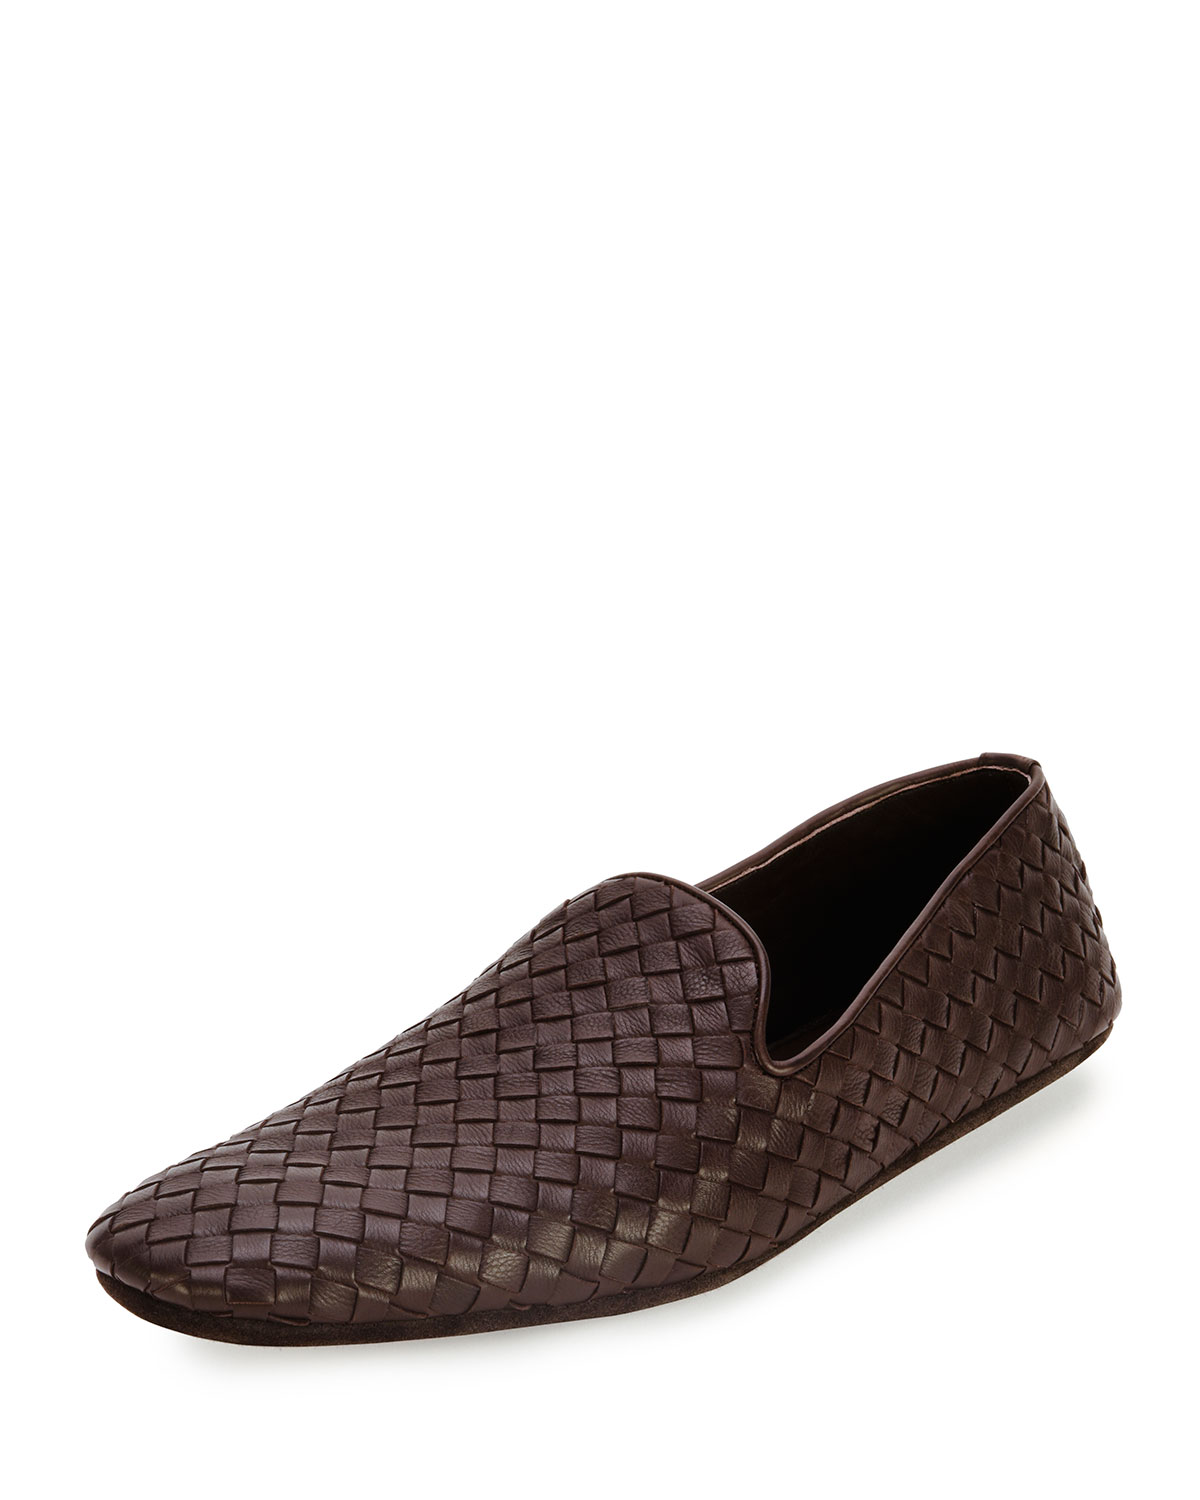 Bottega Veneta Fiandra Woven Leather Loafers 6Q5Fy